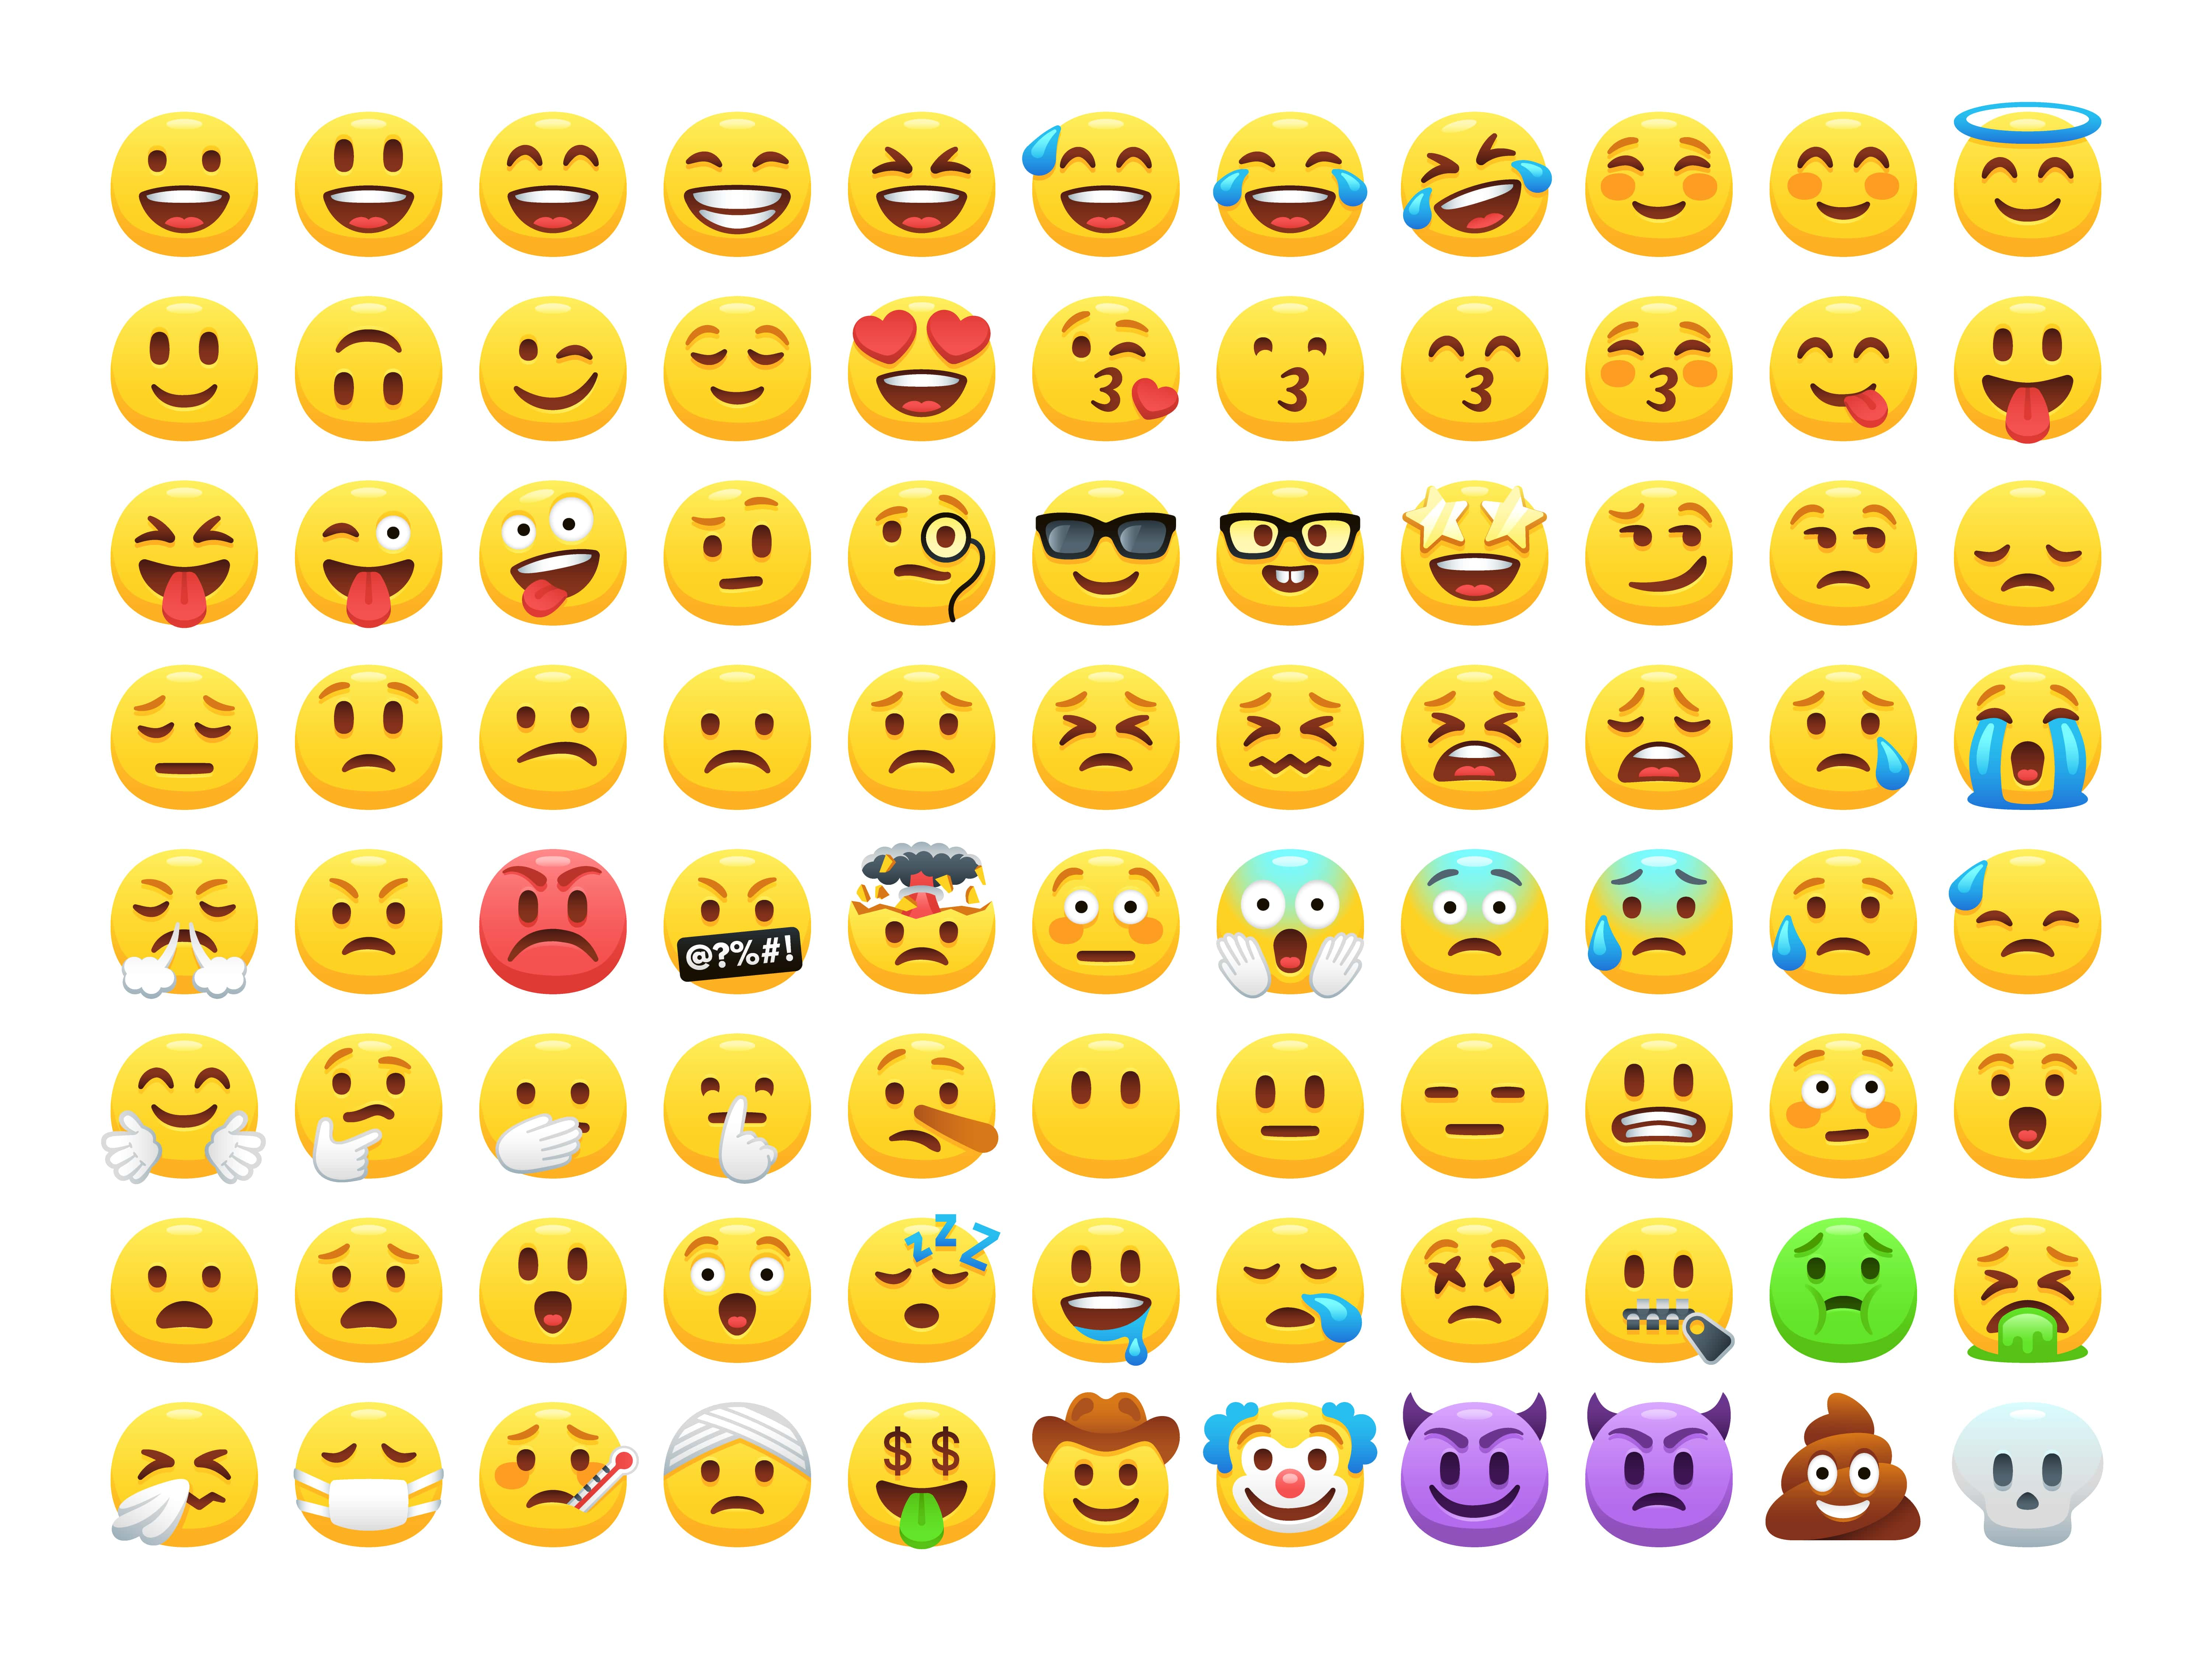 Why your marketing strategy needs emojis [Infographic]